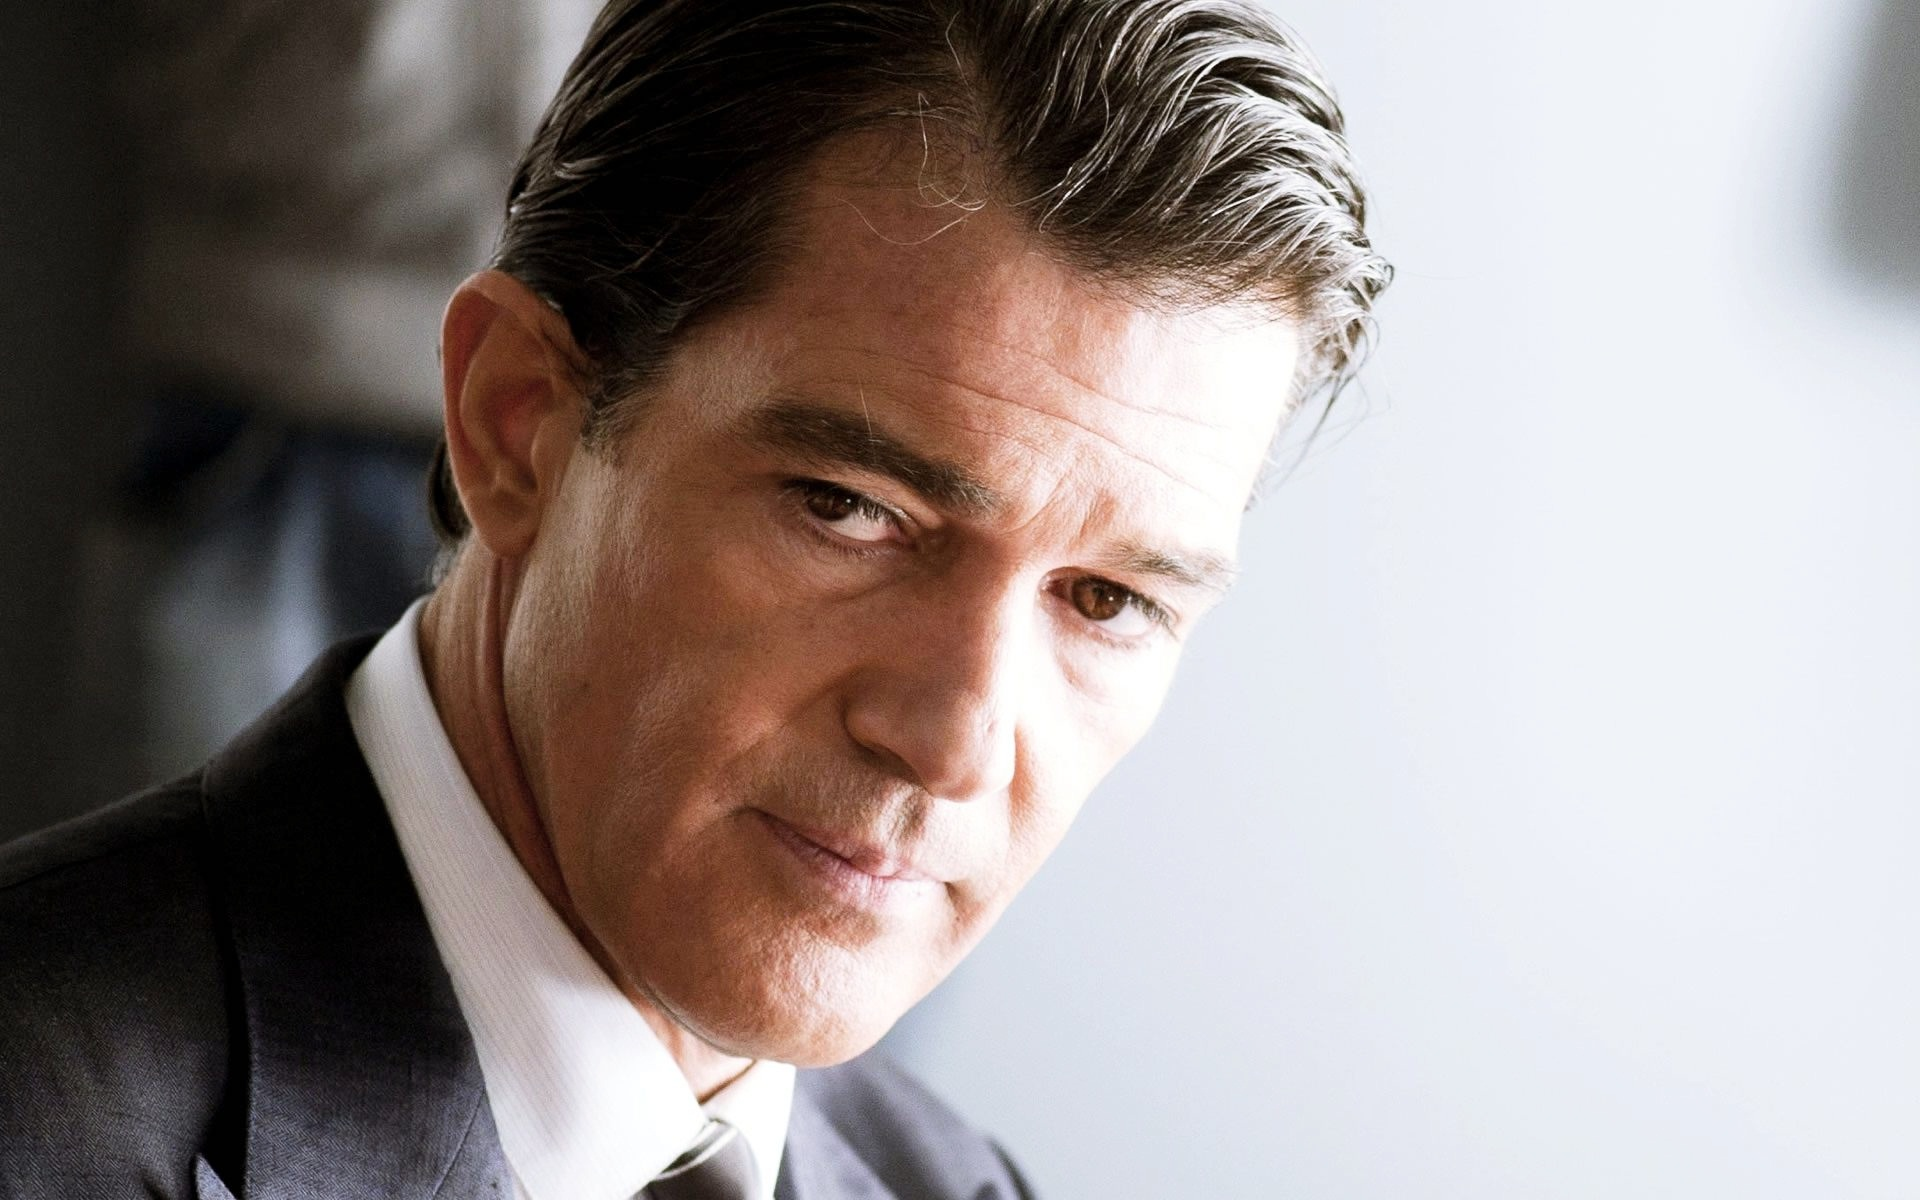 antonio banderas wallpaper 42448